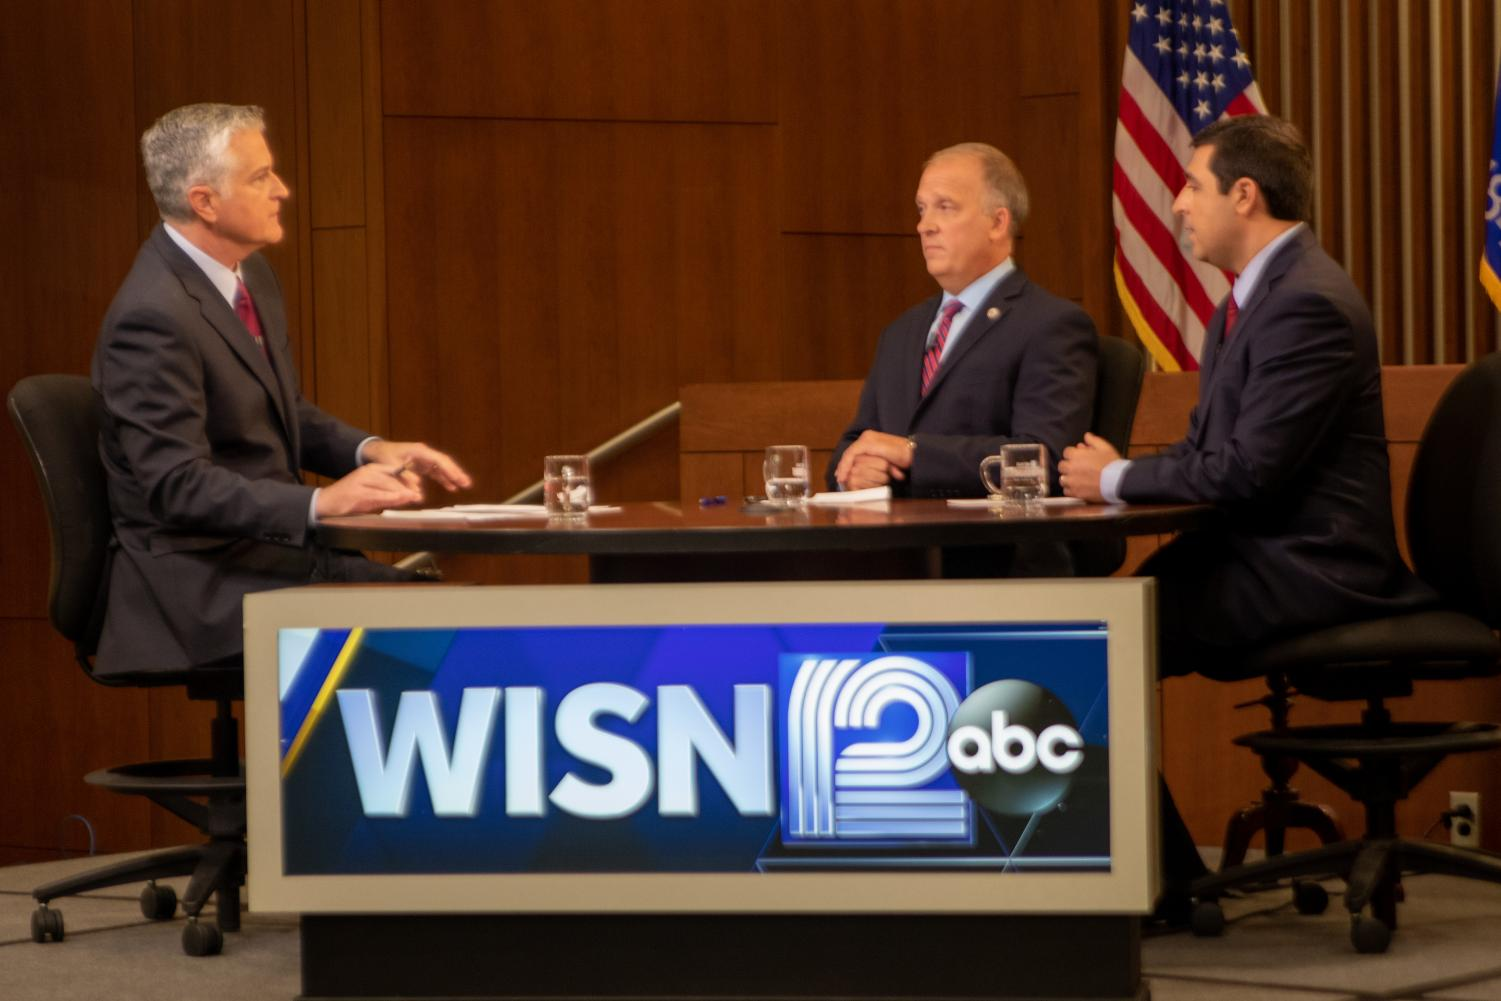 WISN hosts 'On the Issues' at the Marquette University law school.